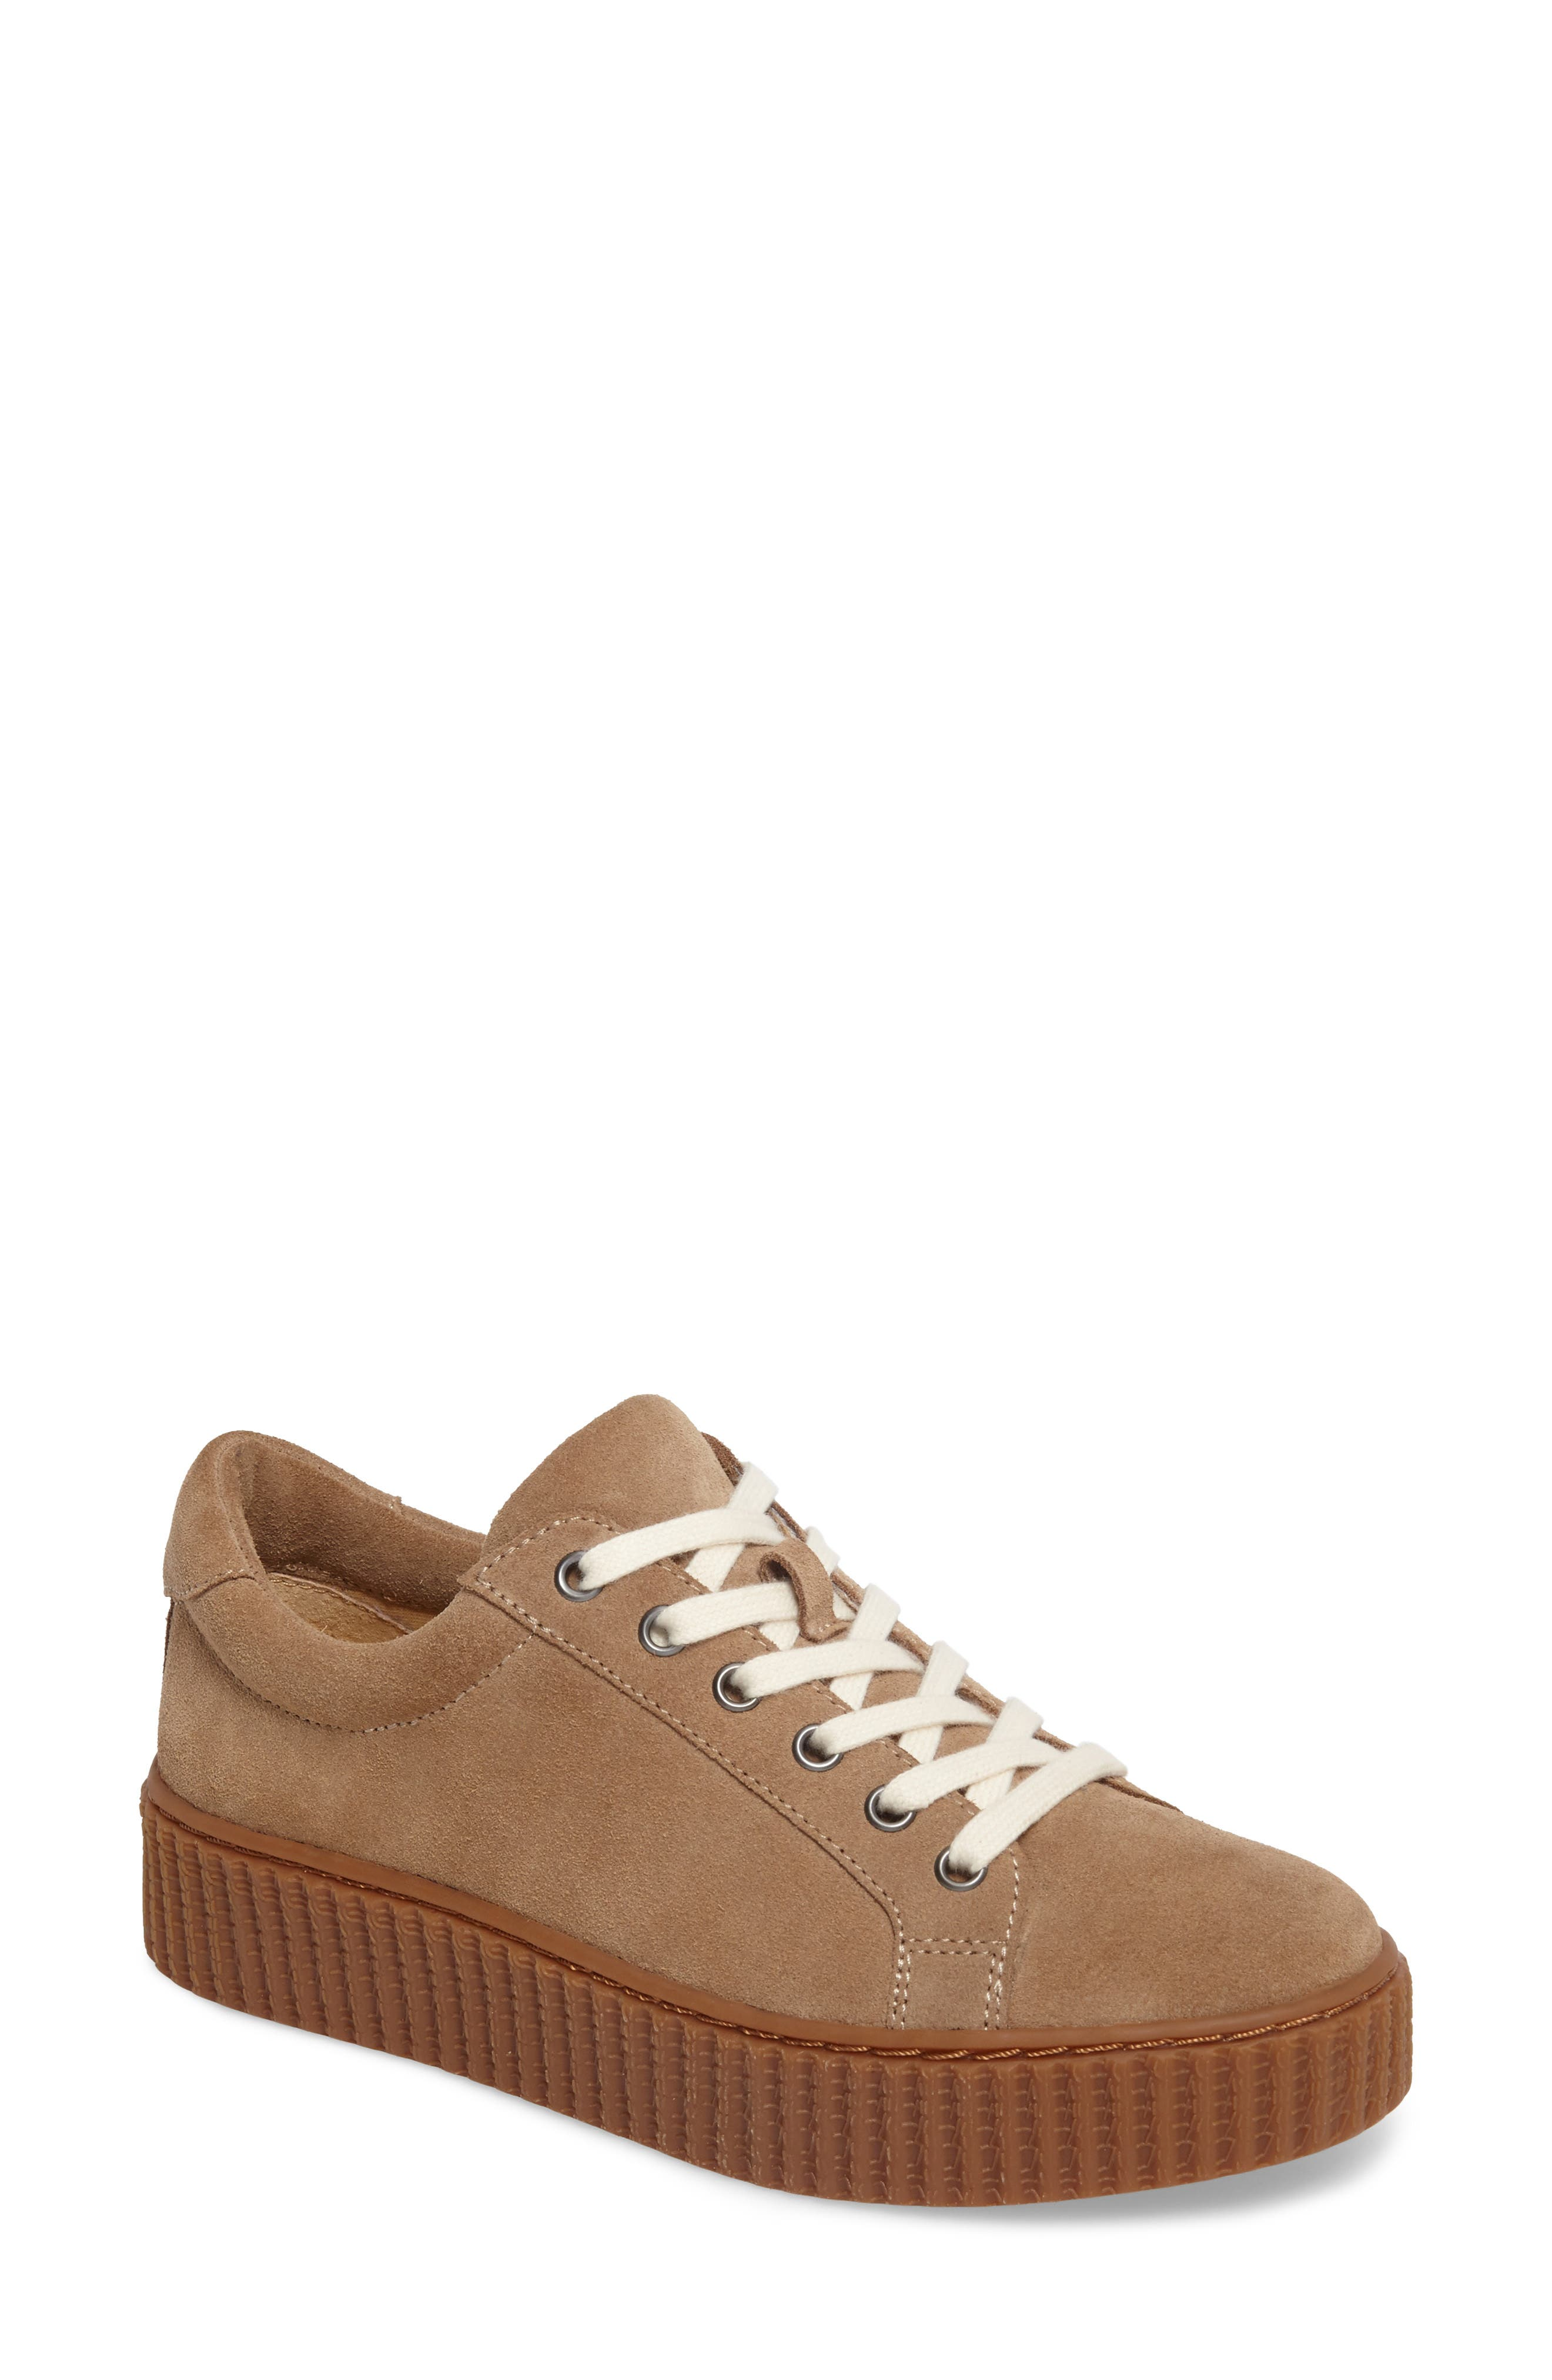 Ruth Platform Sneaker,                             Main thumbnail 1, color,                             Light Taupe Suede